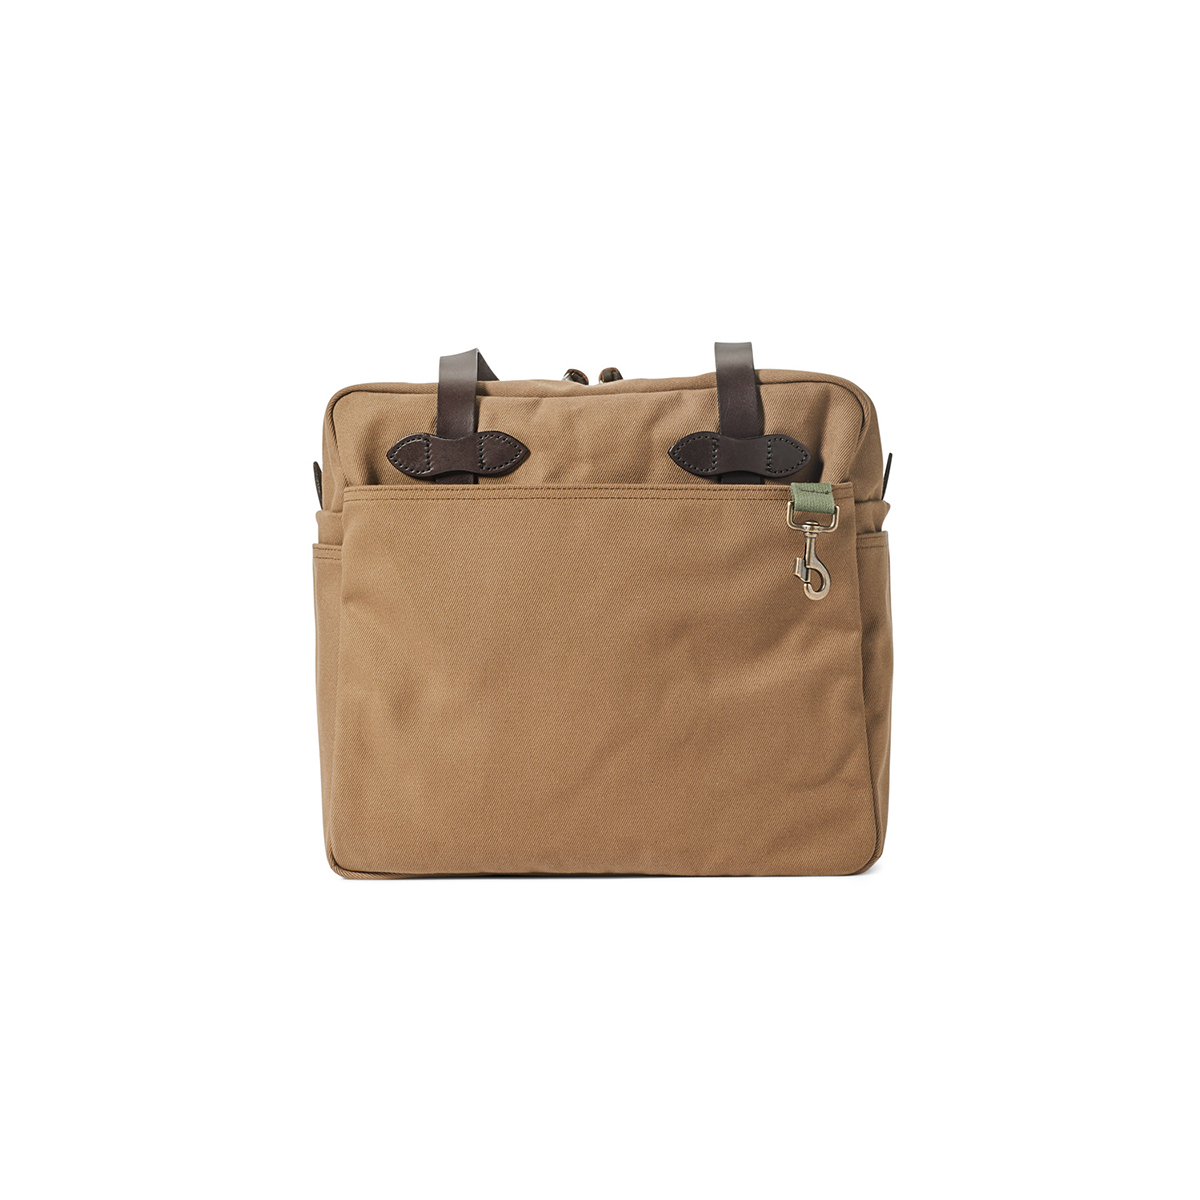 Filson Rugged Twill Tote Bag with Zipper 20112028